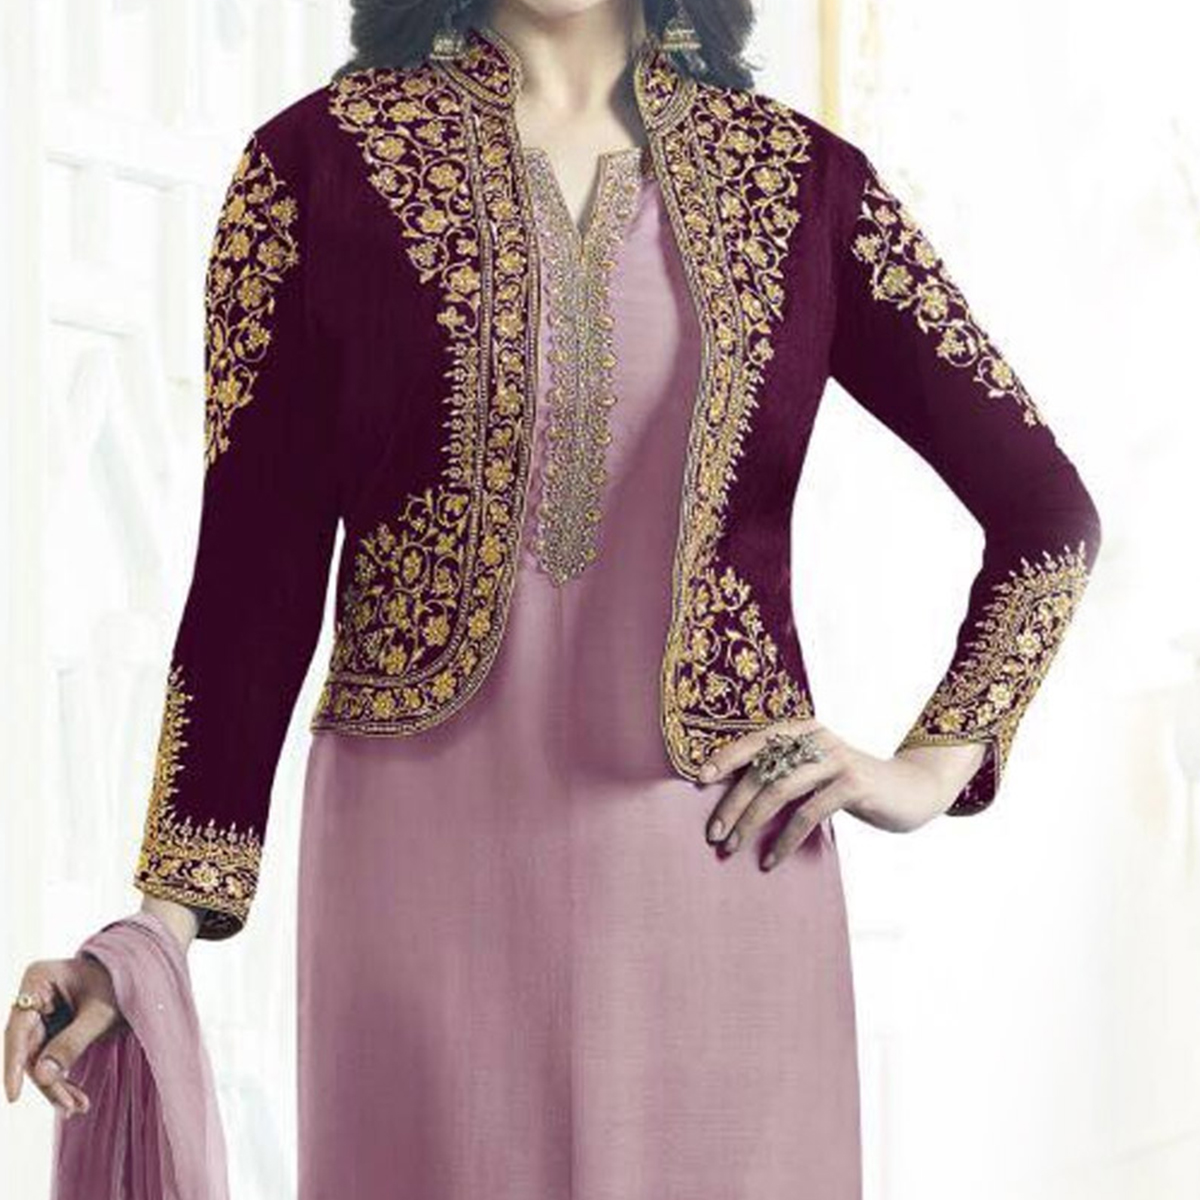 Light Pink Embroidered Jacket Suit